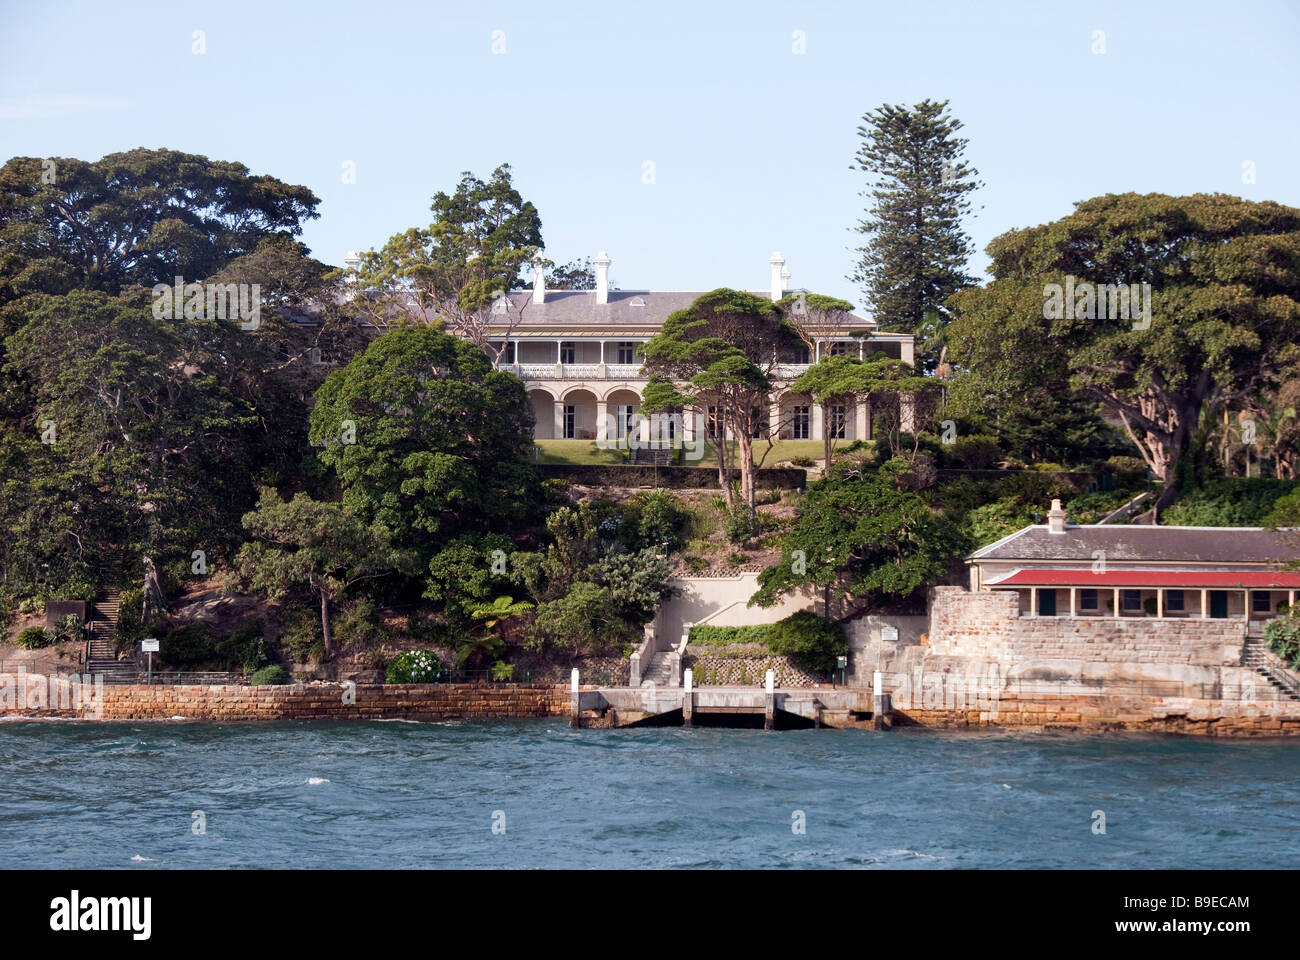 Kirribilli House, the official Sydney residence of the Australian Prime Minister viewed from a passing Manly Ferry - Stock Image